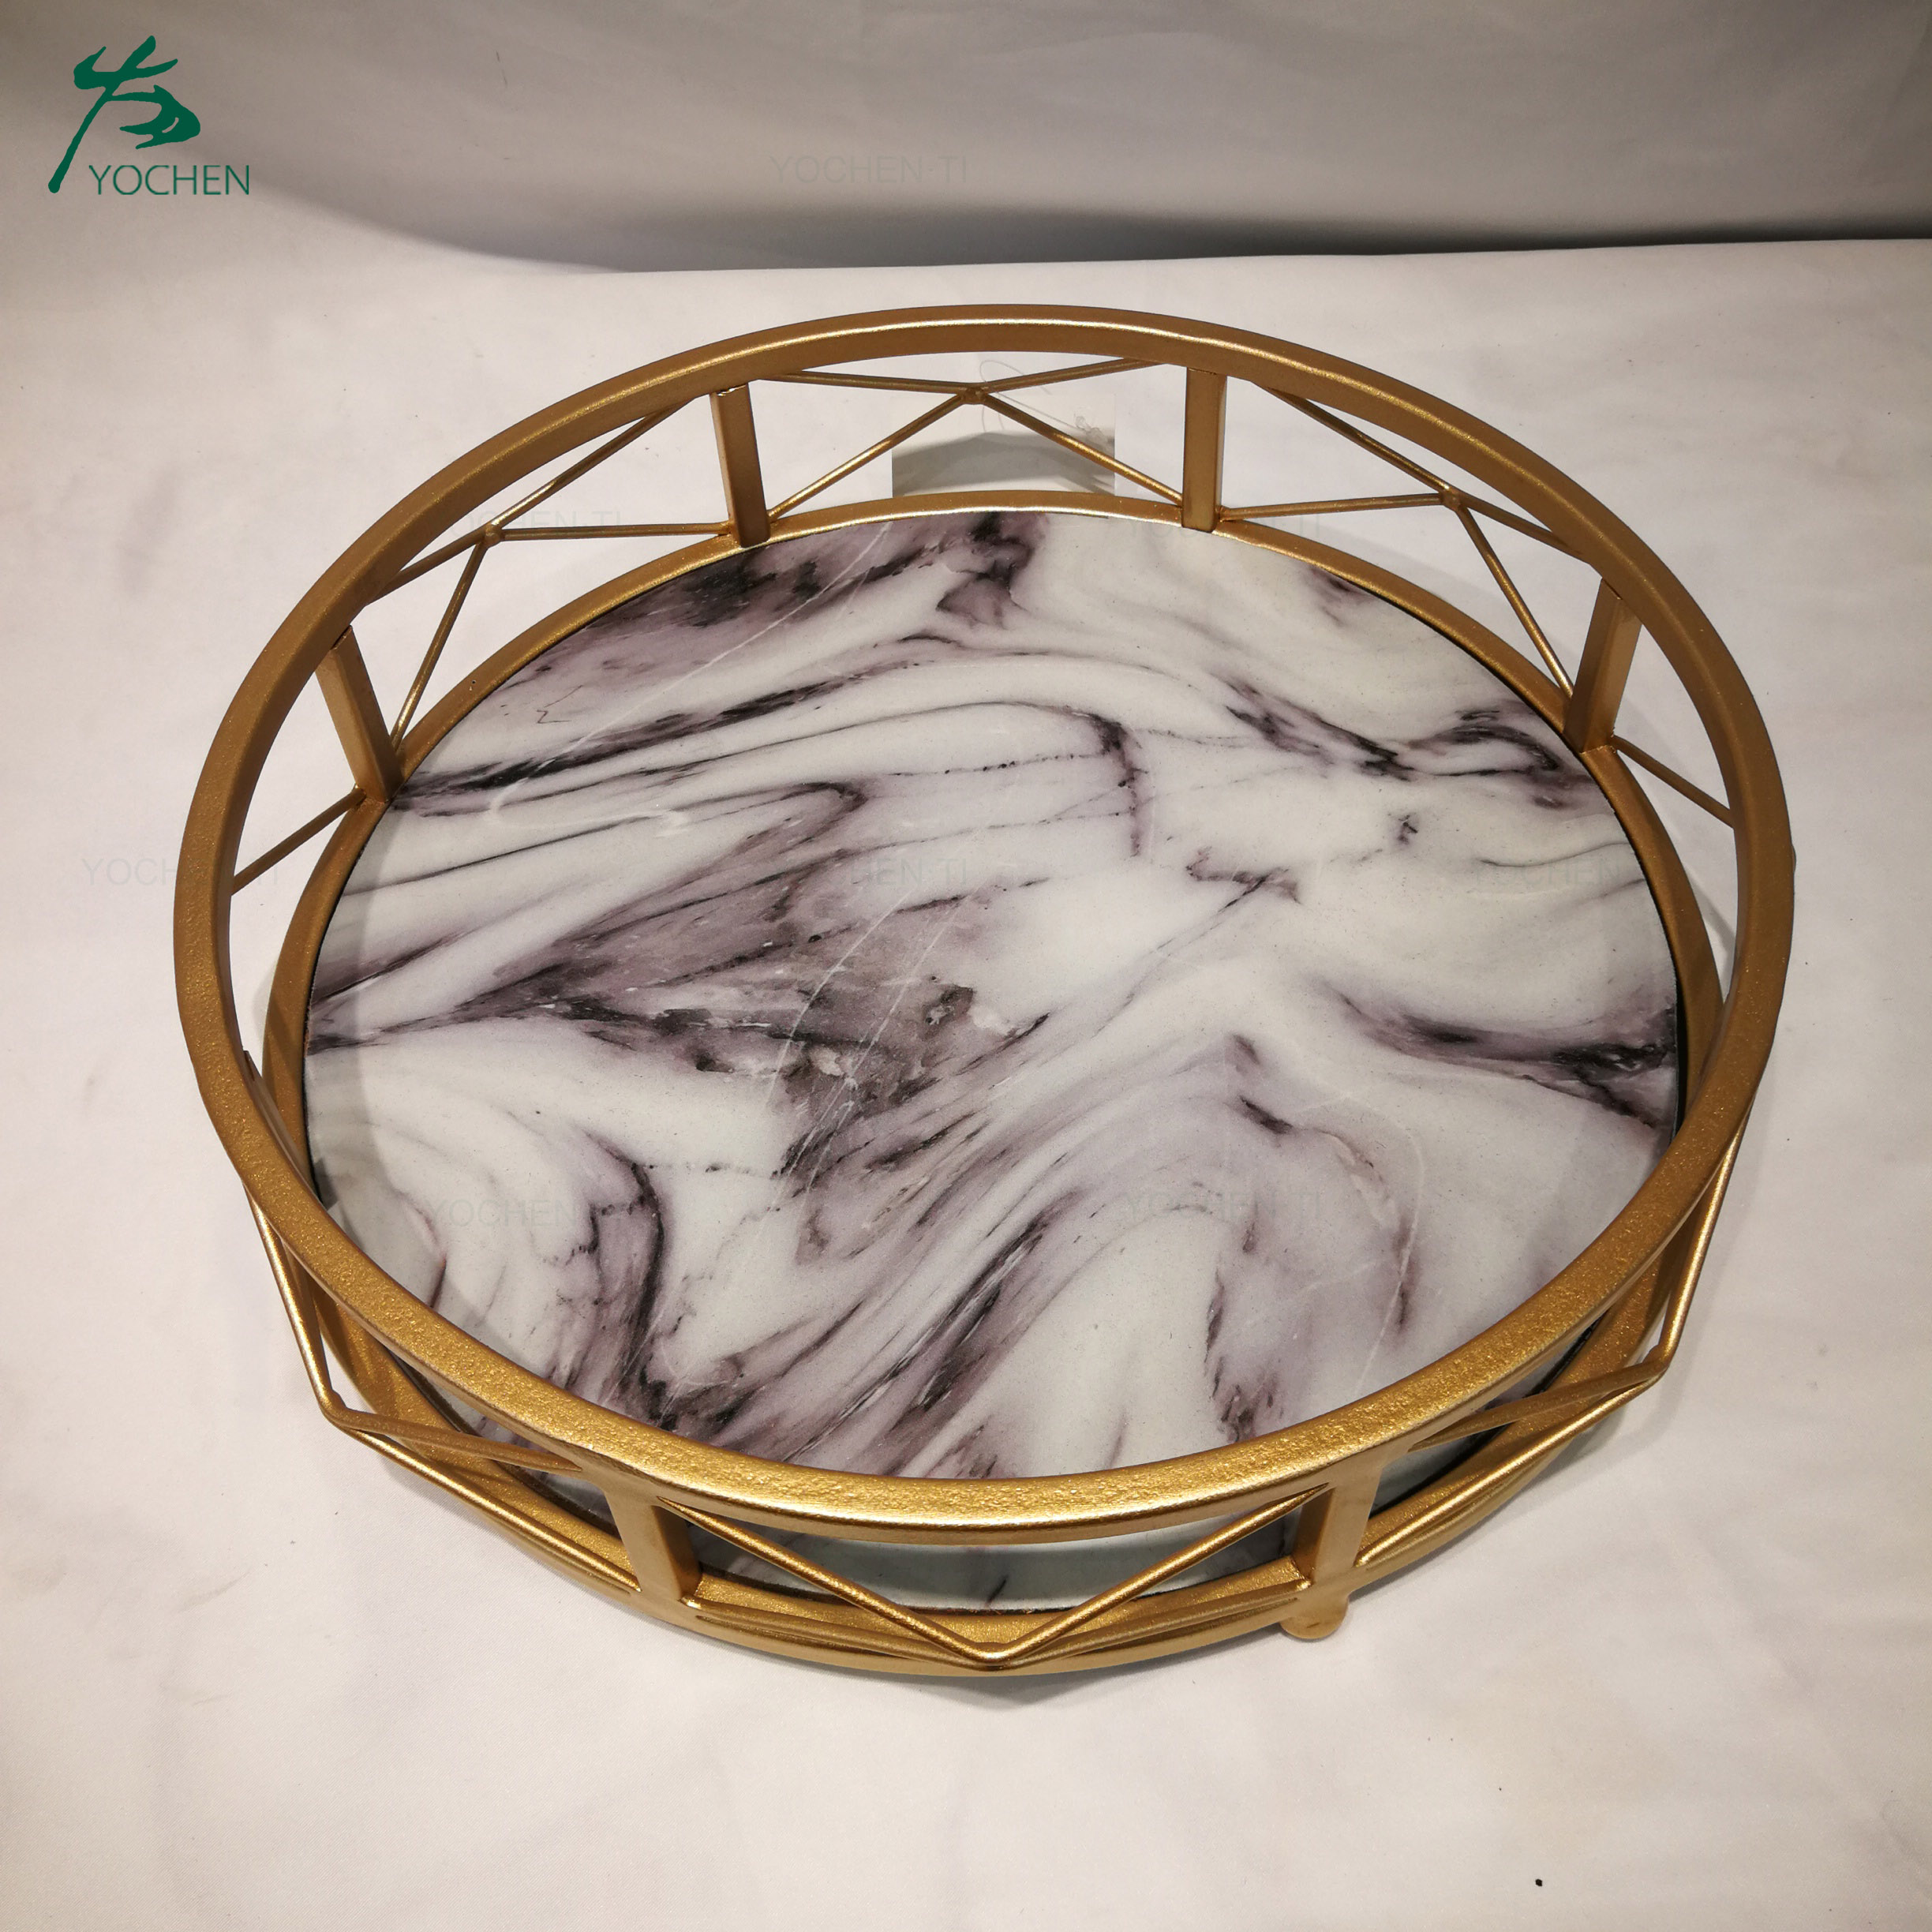 Gold Marble Perfume Tray Vanity Dresser Tray Ornate Metal Decorative Tray